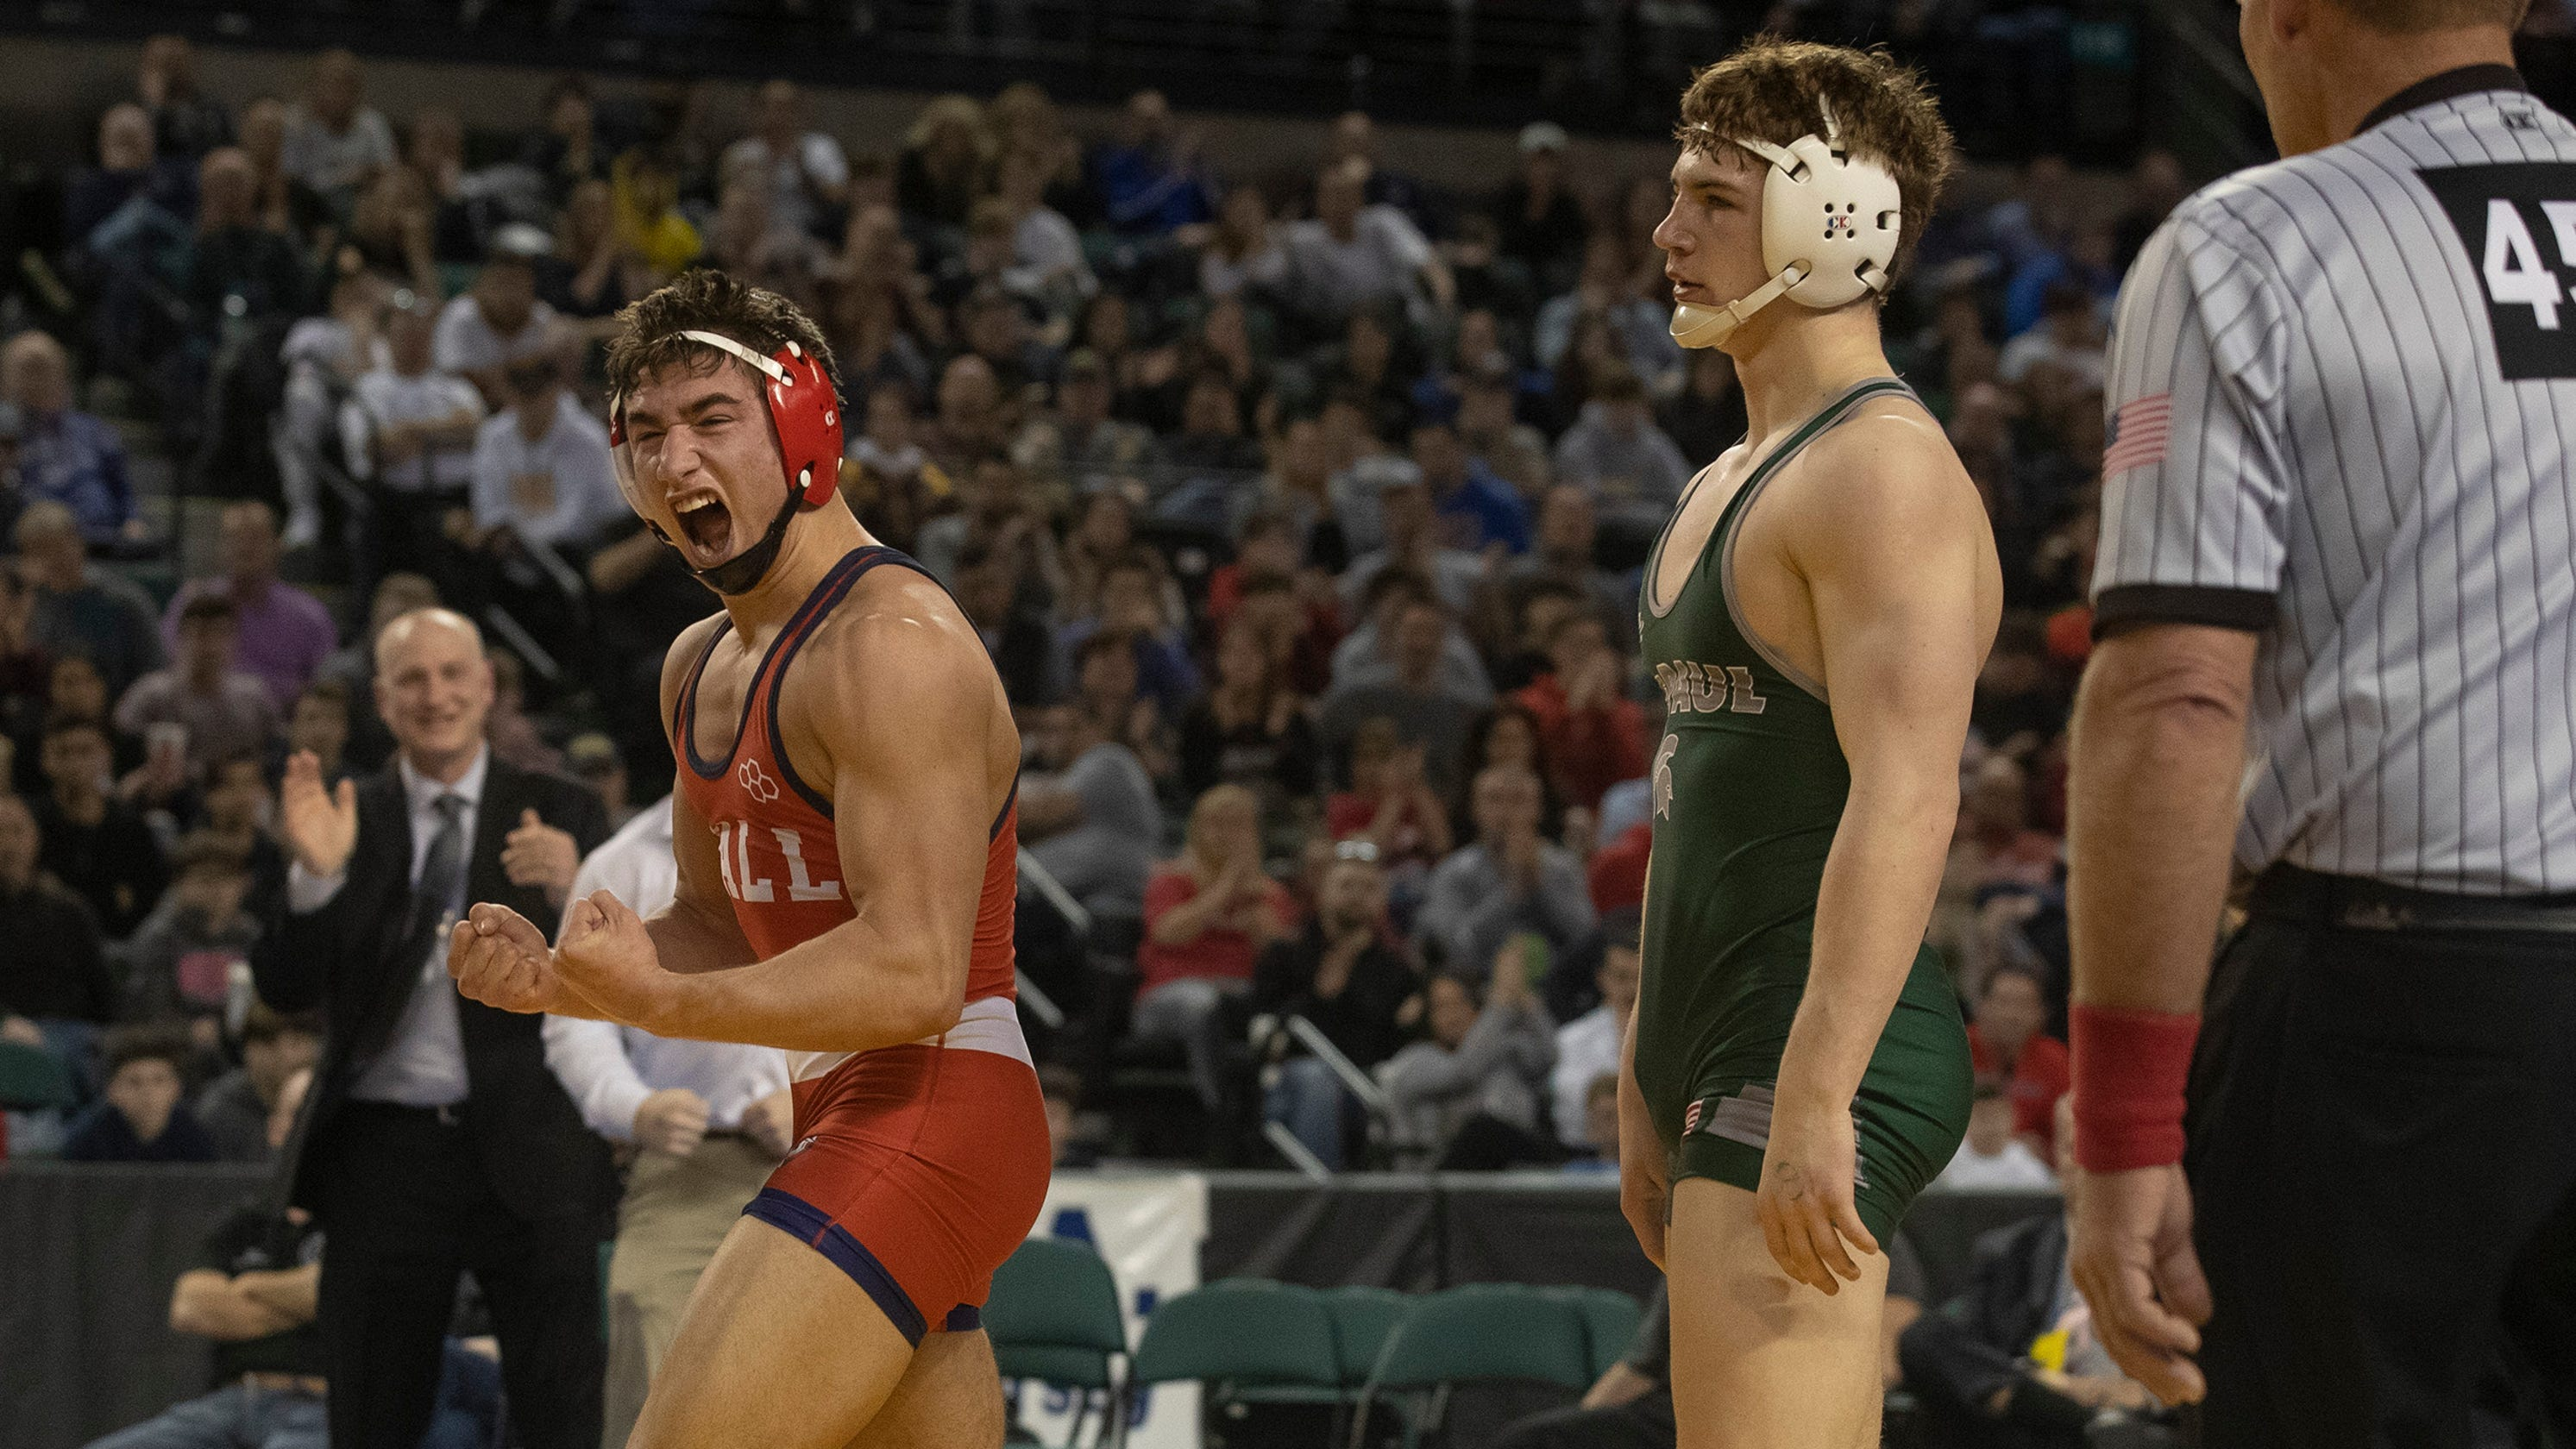 NJ wrestling: Robert Kanniard of Wall gets to the top of the podium